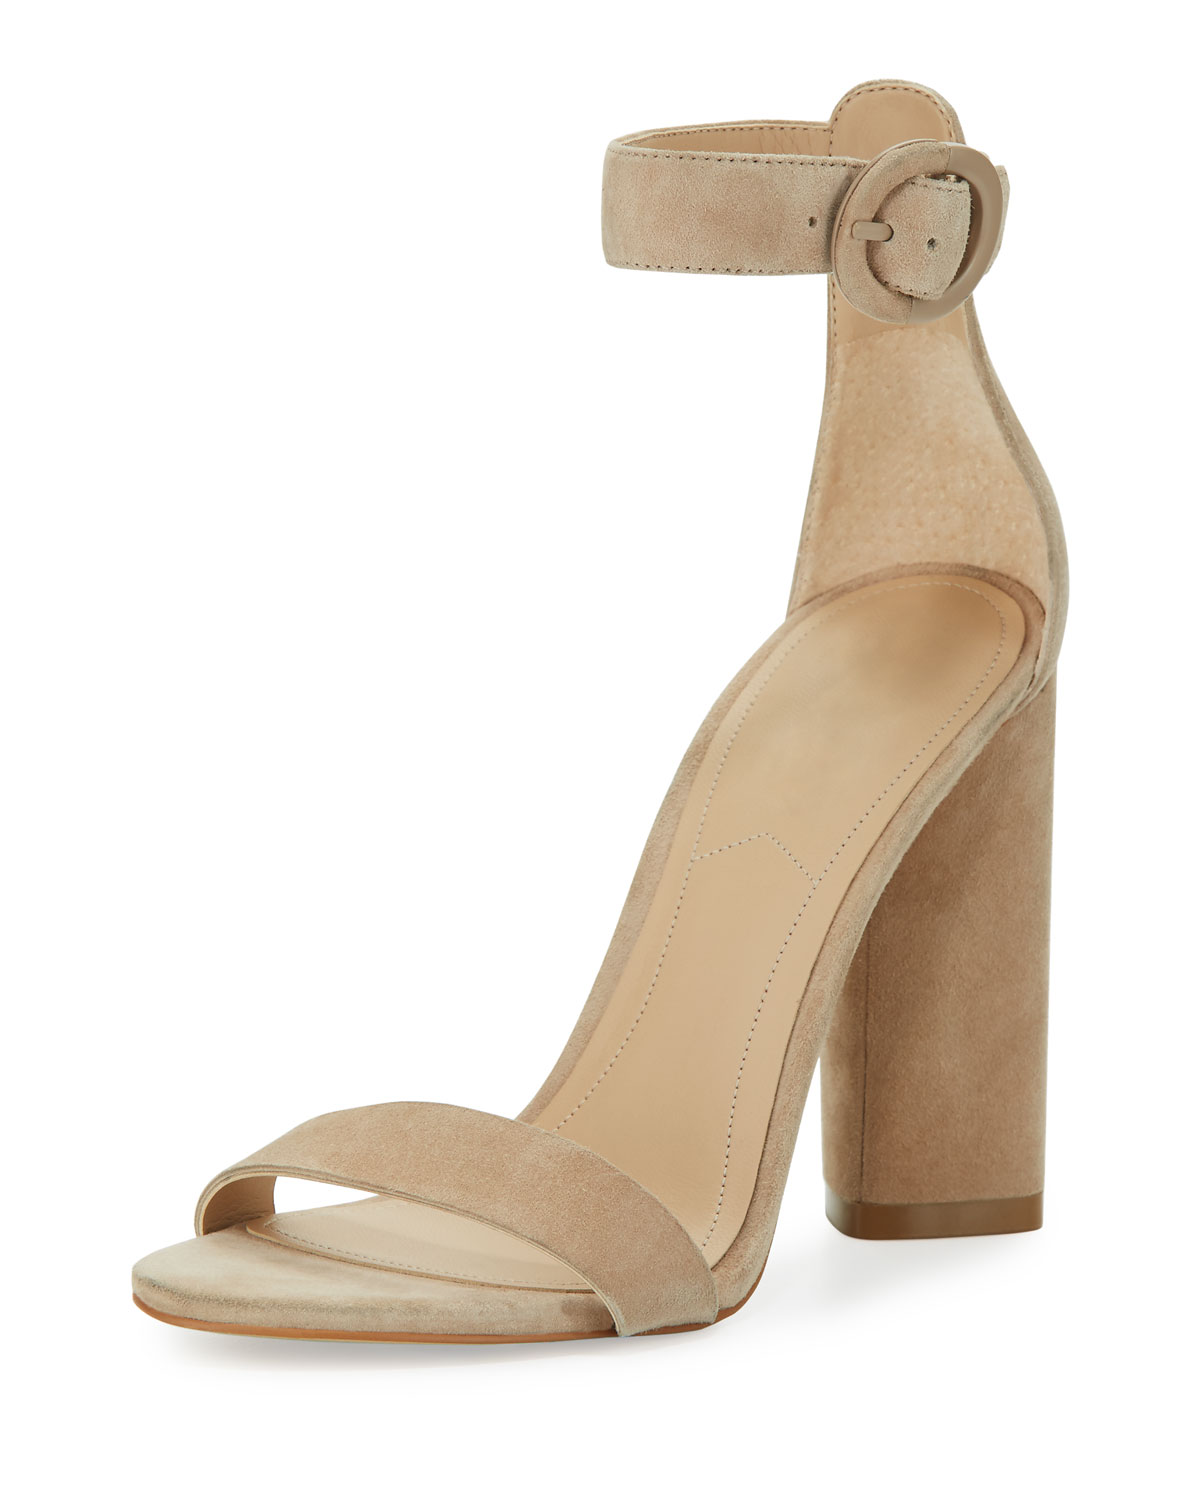 841496186ca Kendall + Kylie Giselle Suede Chunky-Heel Sandal